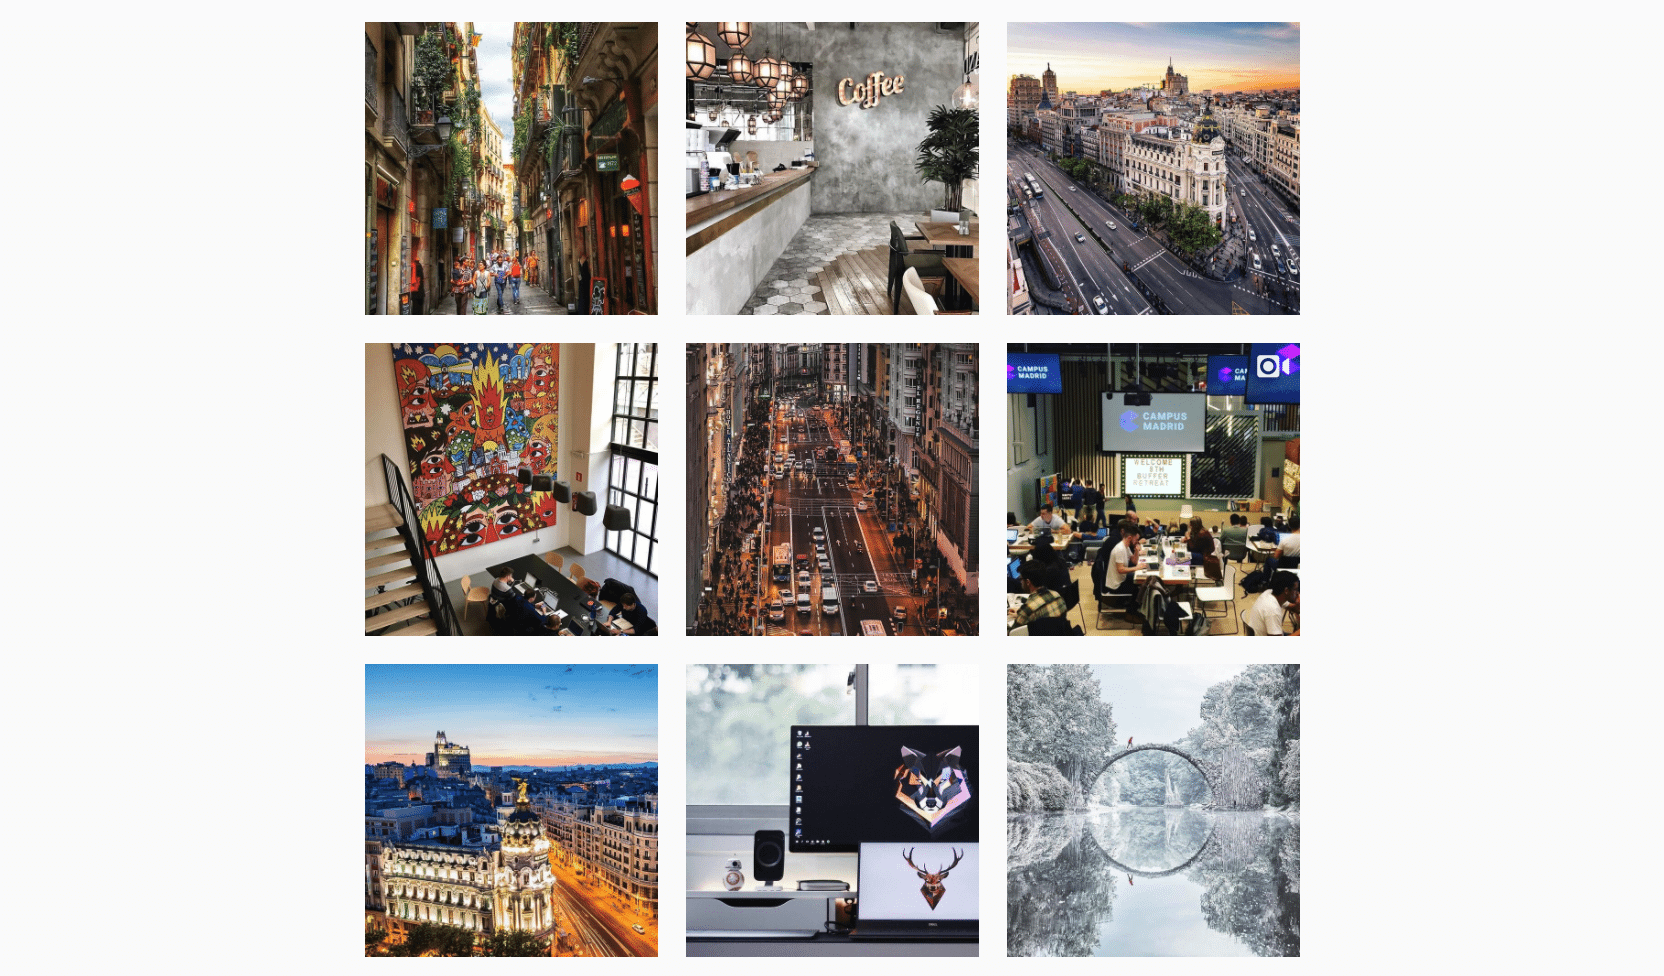 User-generated content on our Instagram profile